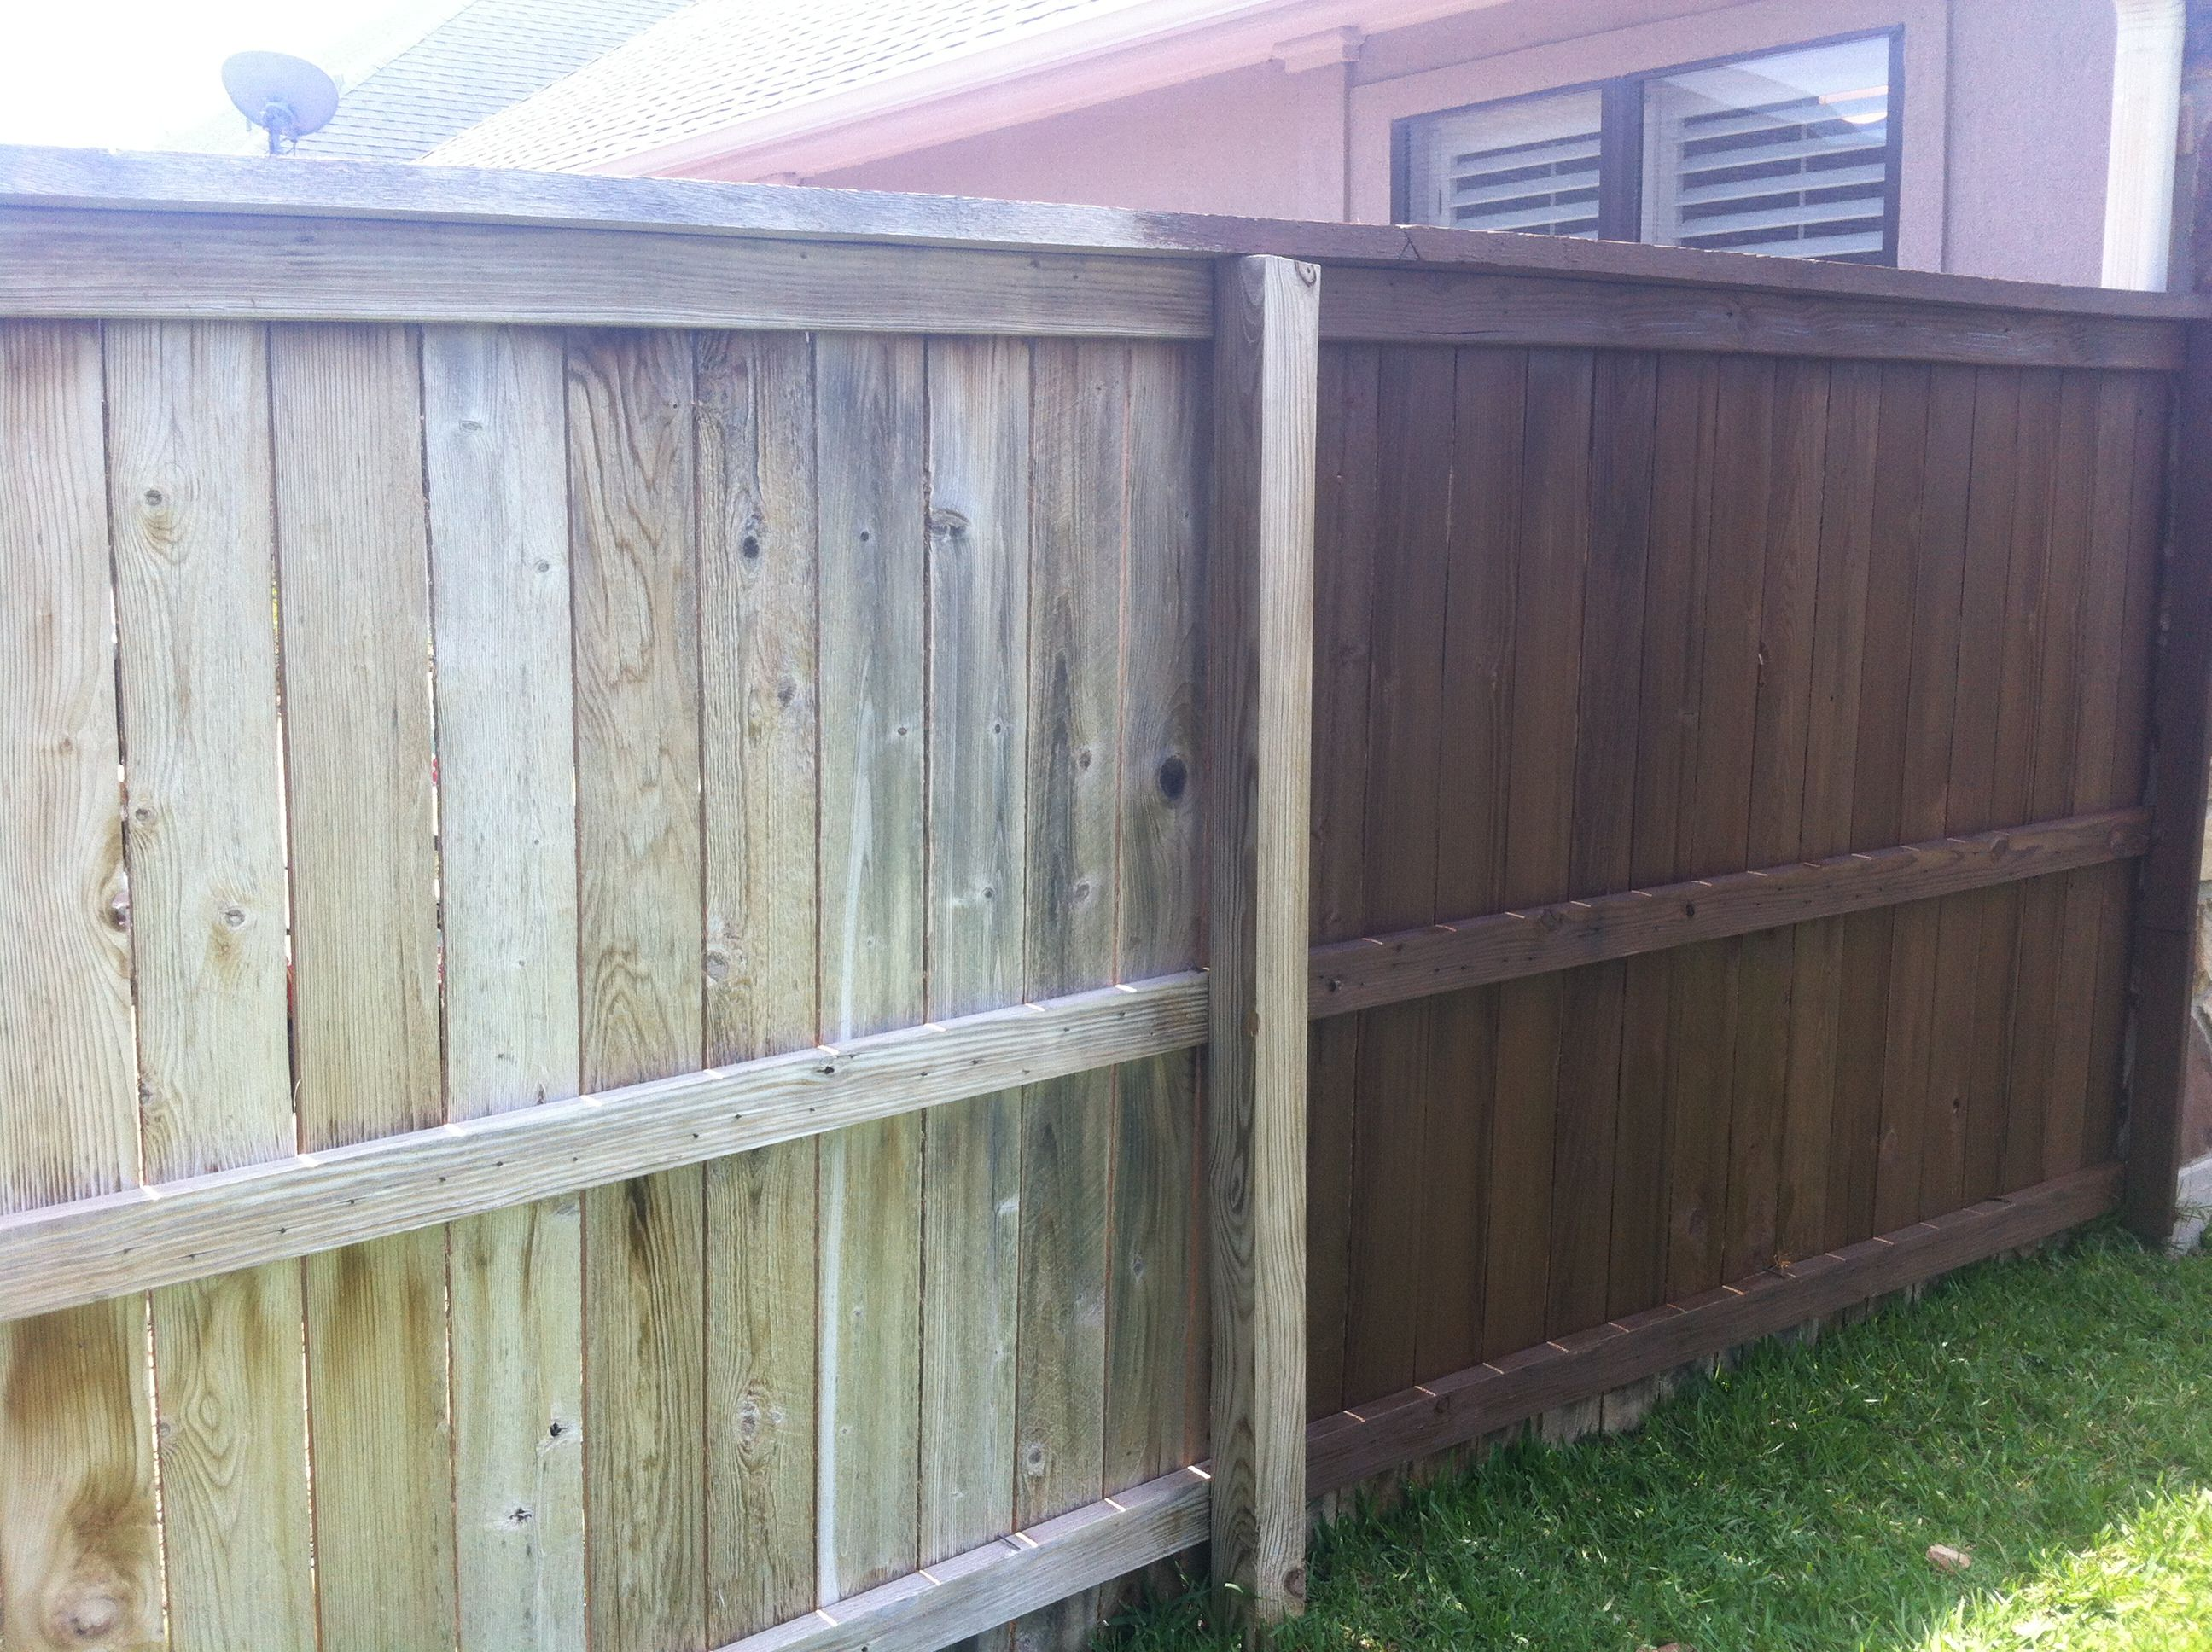 Staining A Wood Fence With Sprayer Label Wood Stain Staining Wood Fence Wood Fence Cost Wood Fence